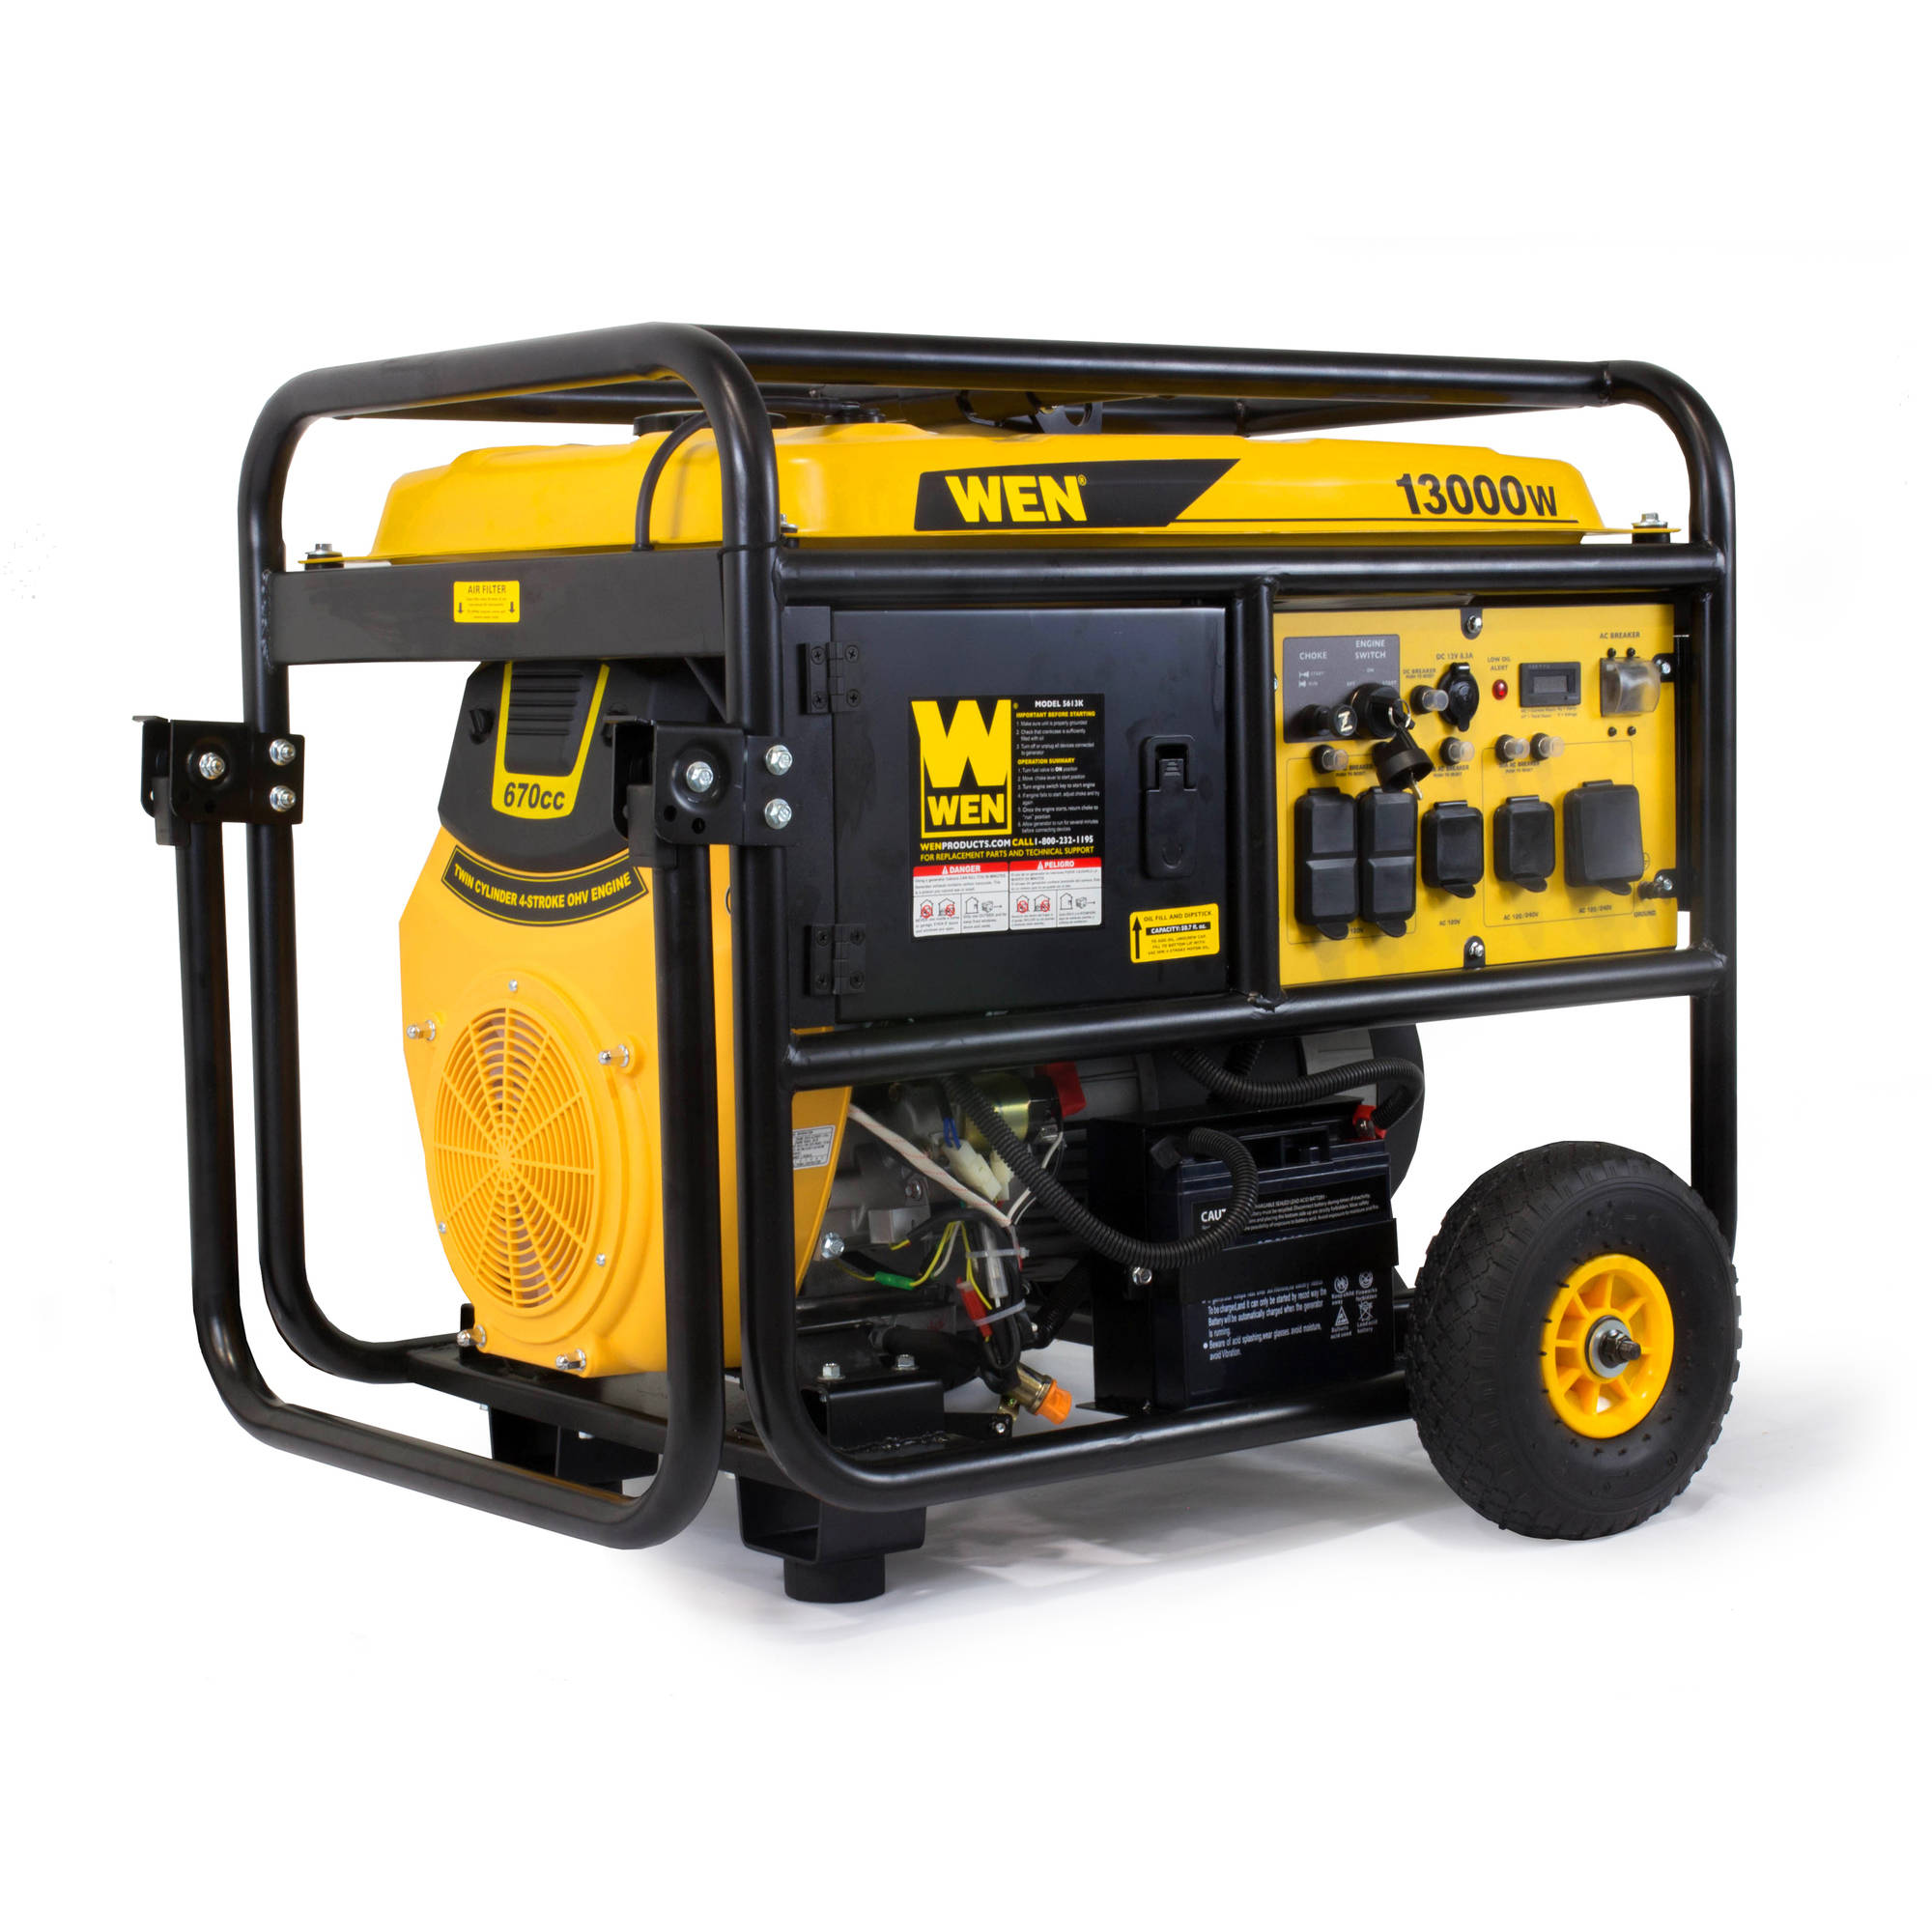 WEN 13000W Portable Standby Generator with Wheel Kit and Electric Start, CARB Compliant